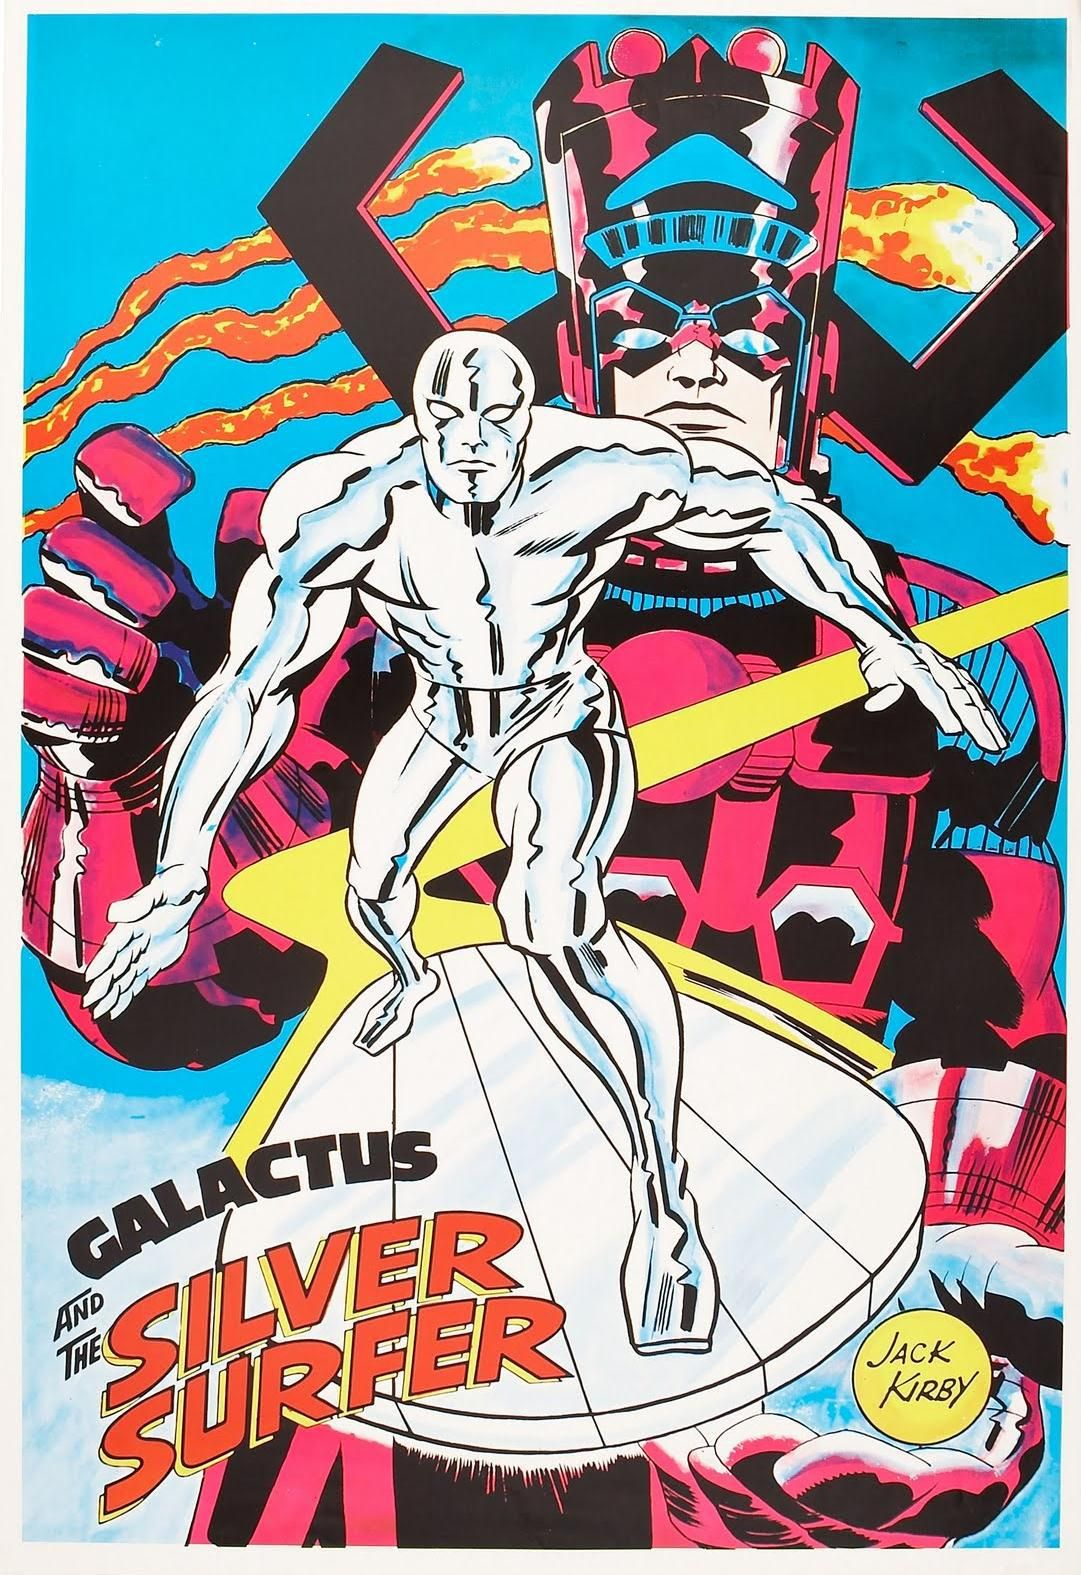 Galactus and the Silver Surfer poster by Jack Kirby | Superheroes ...